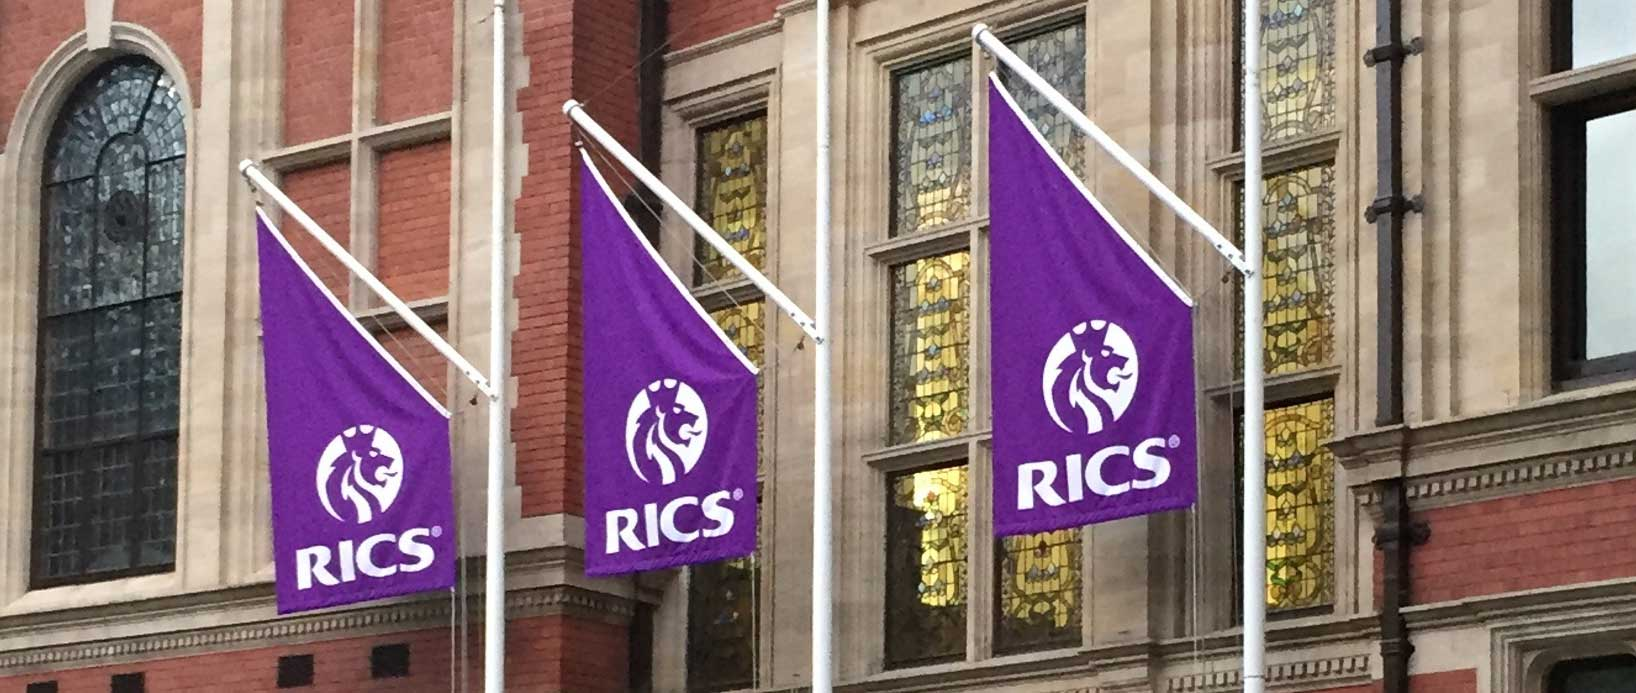 RICS headquarters in Westminster